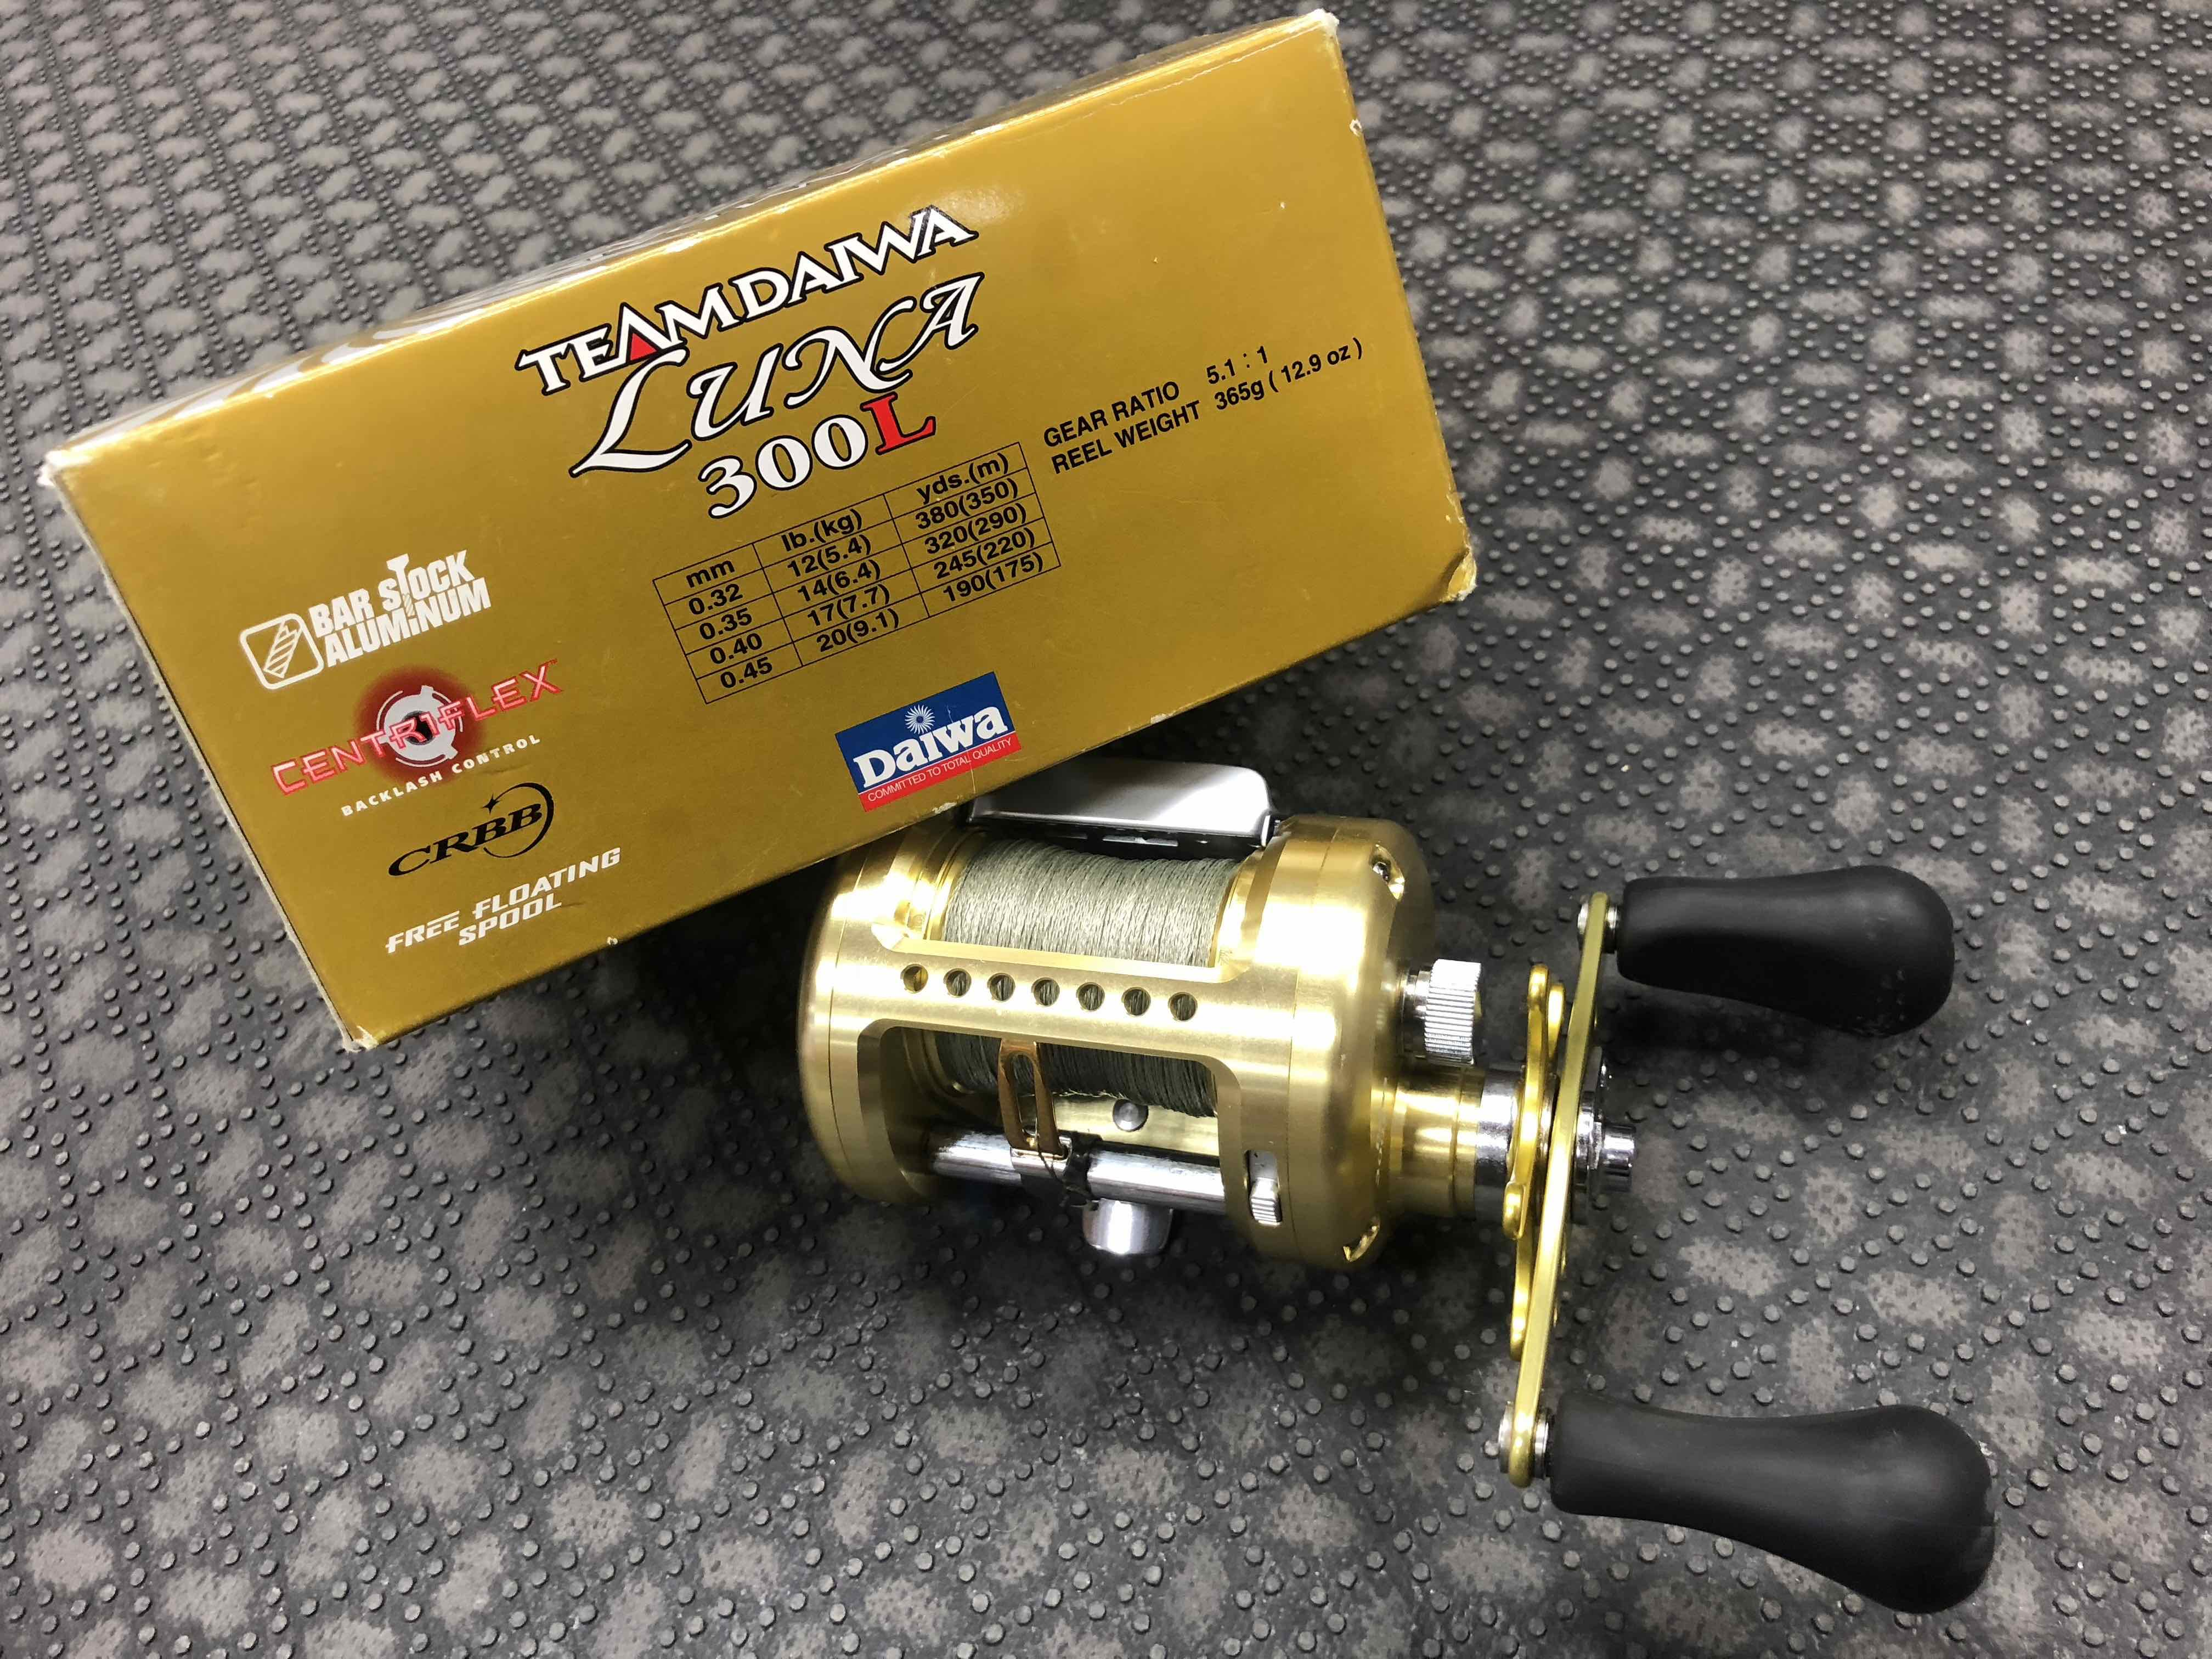 4b1255ccb94 Team Daiwa Luna 300L Baitcast Reel - GREAT SHAPE! - $150